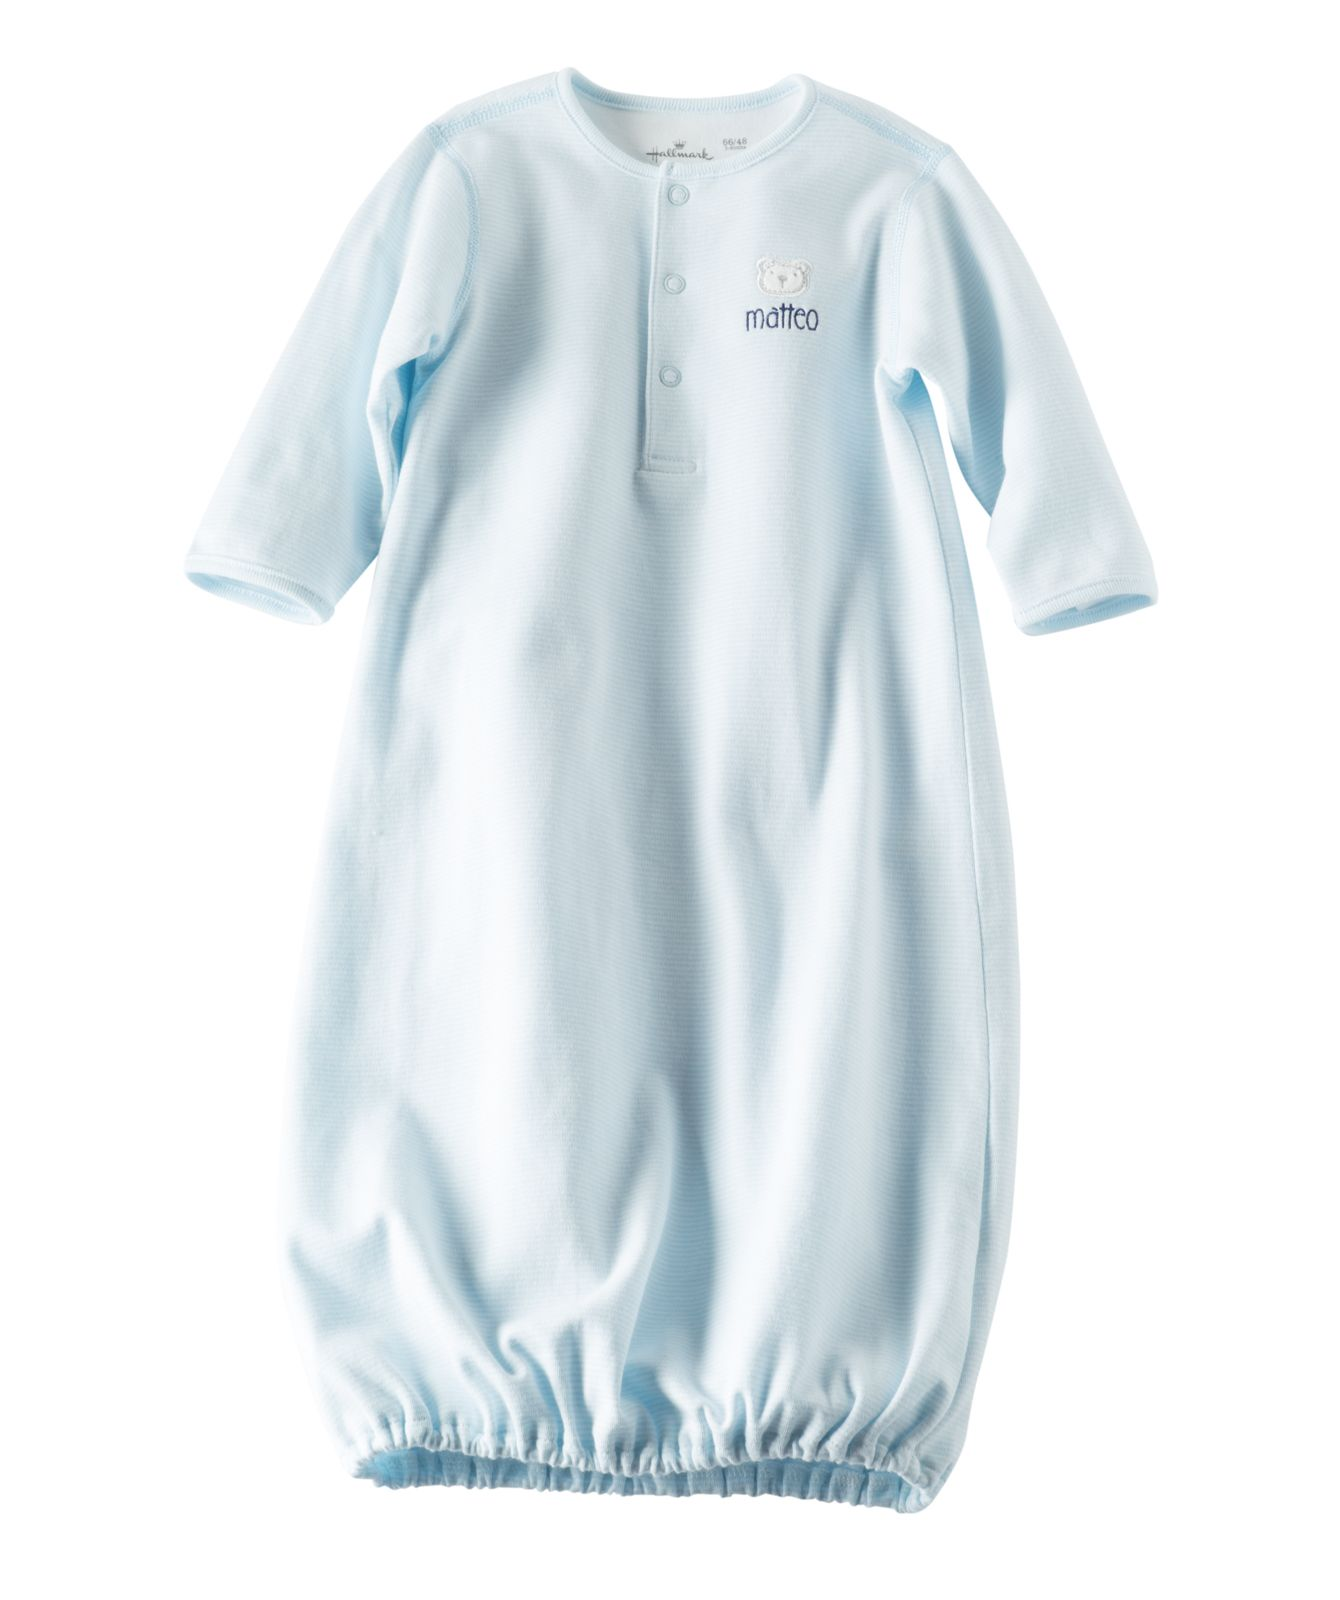 92eca572a Sweet little sleep gown you can personalize for baby boy - from Hallmark  Baby